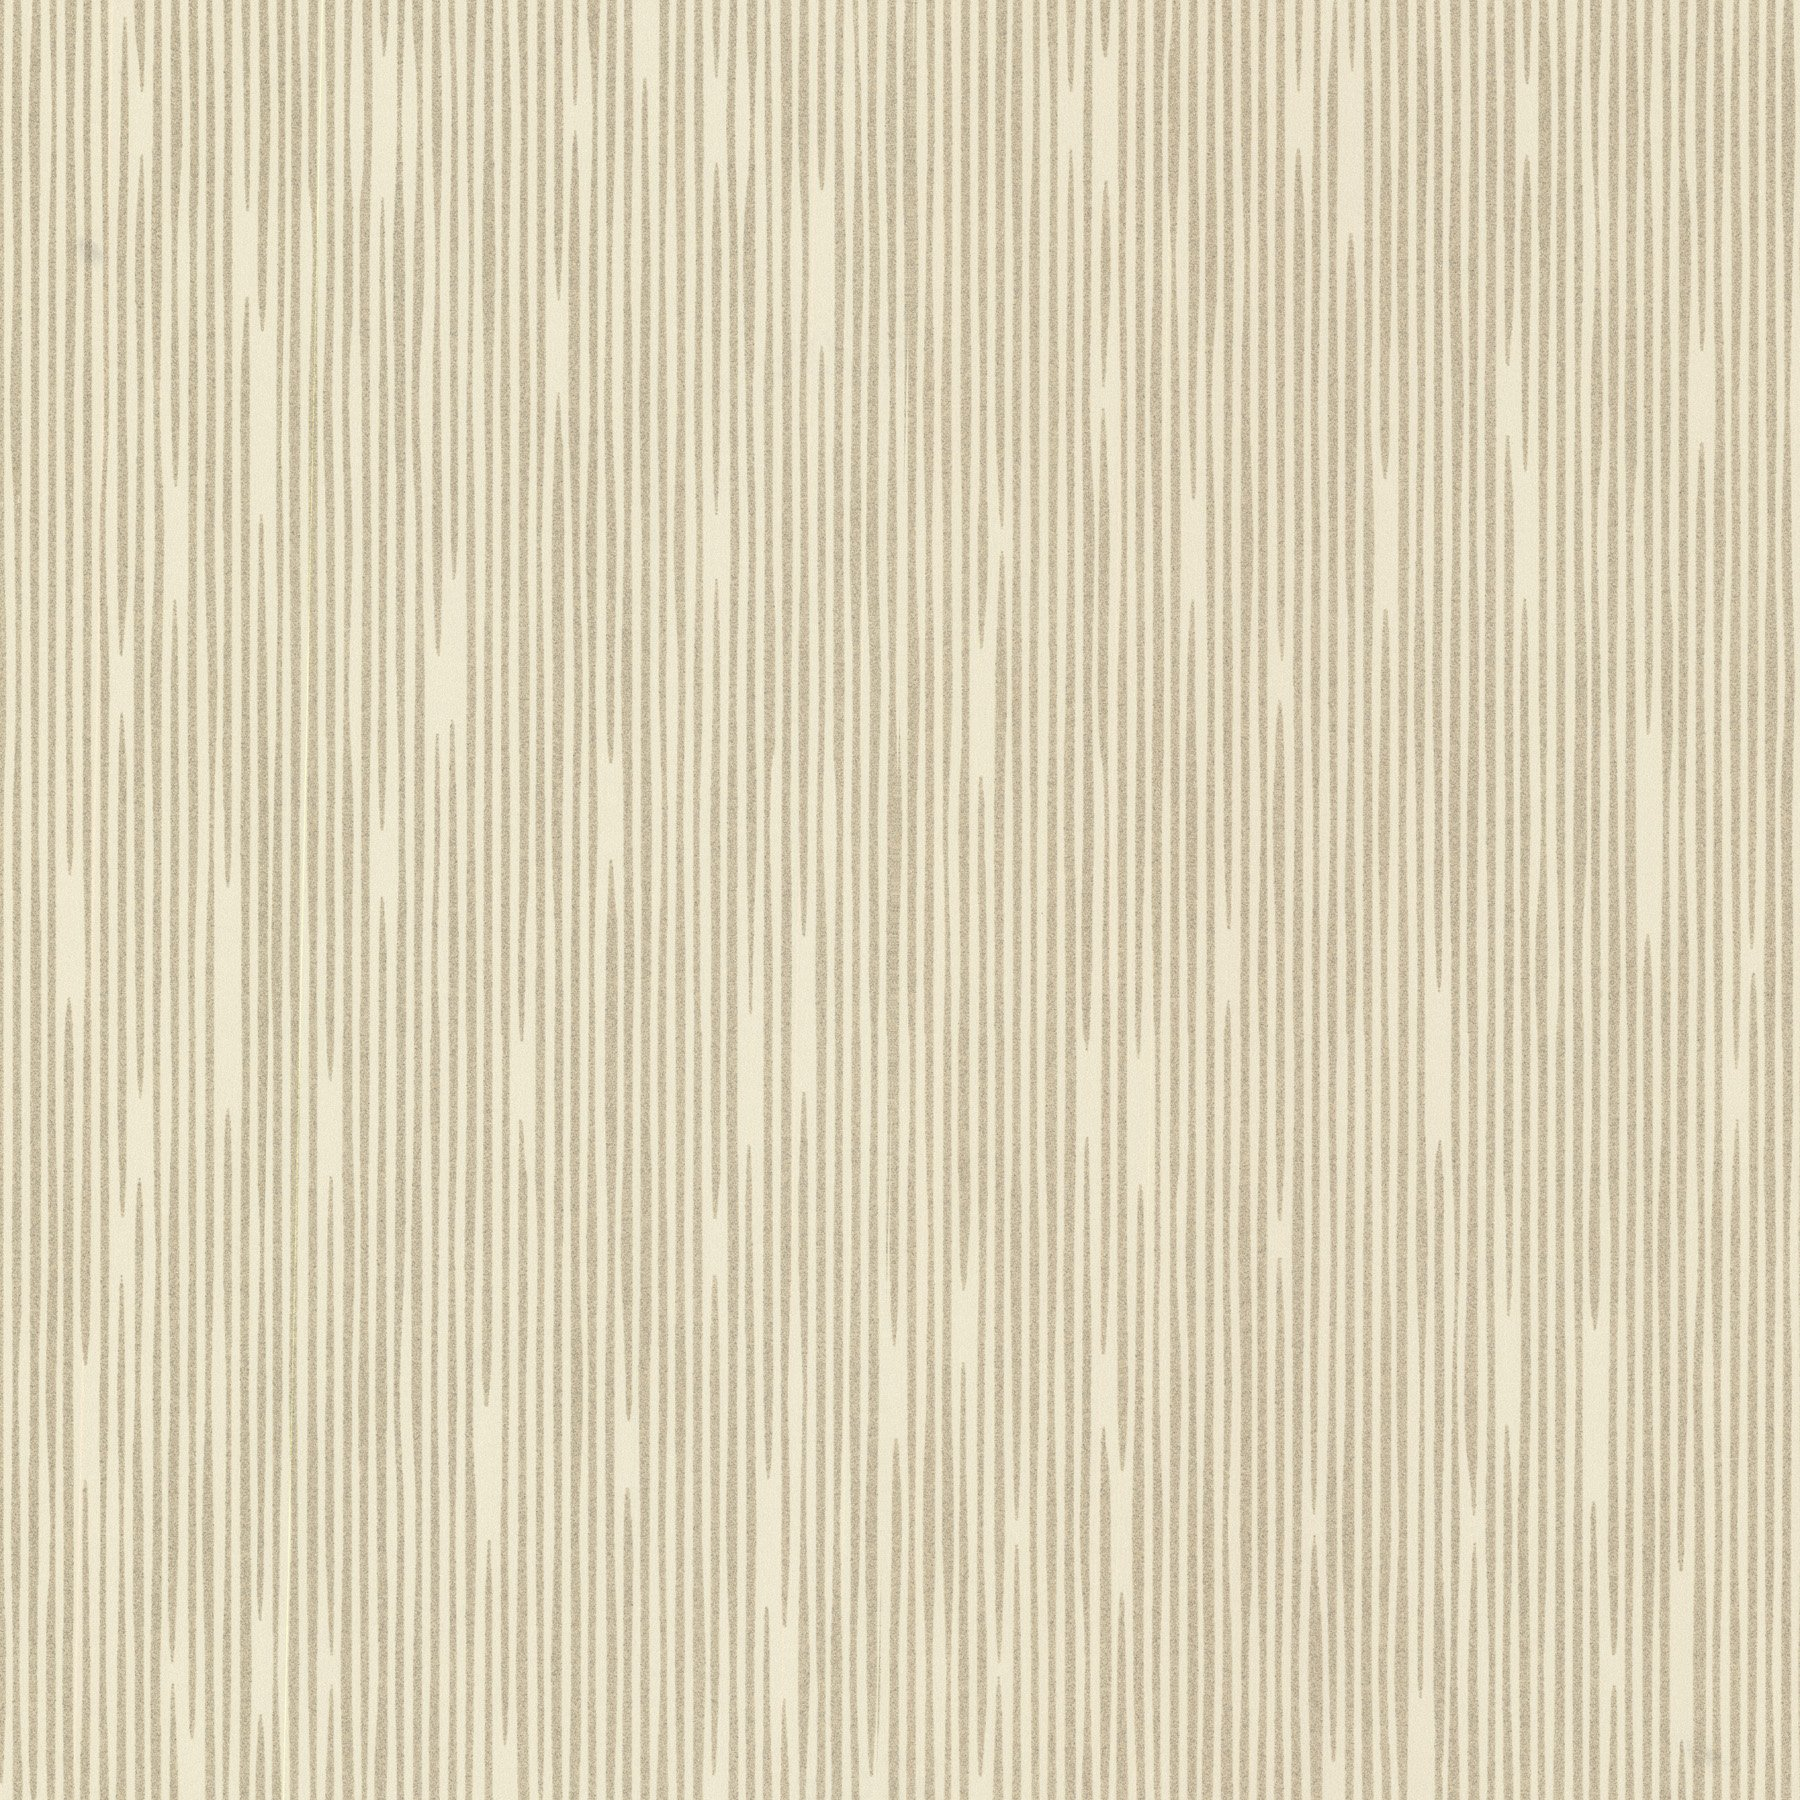 Decorline 488-31235 Pilar Bark Texture Wallpaper, Gold